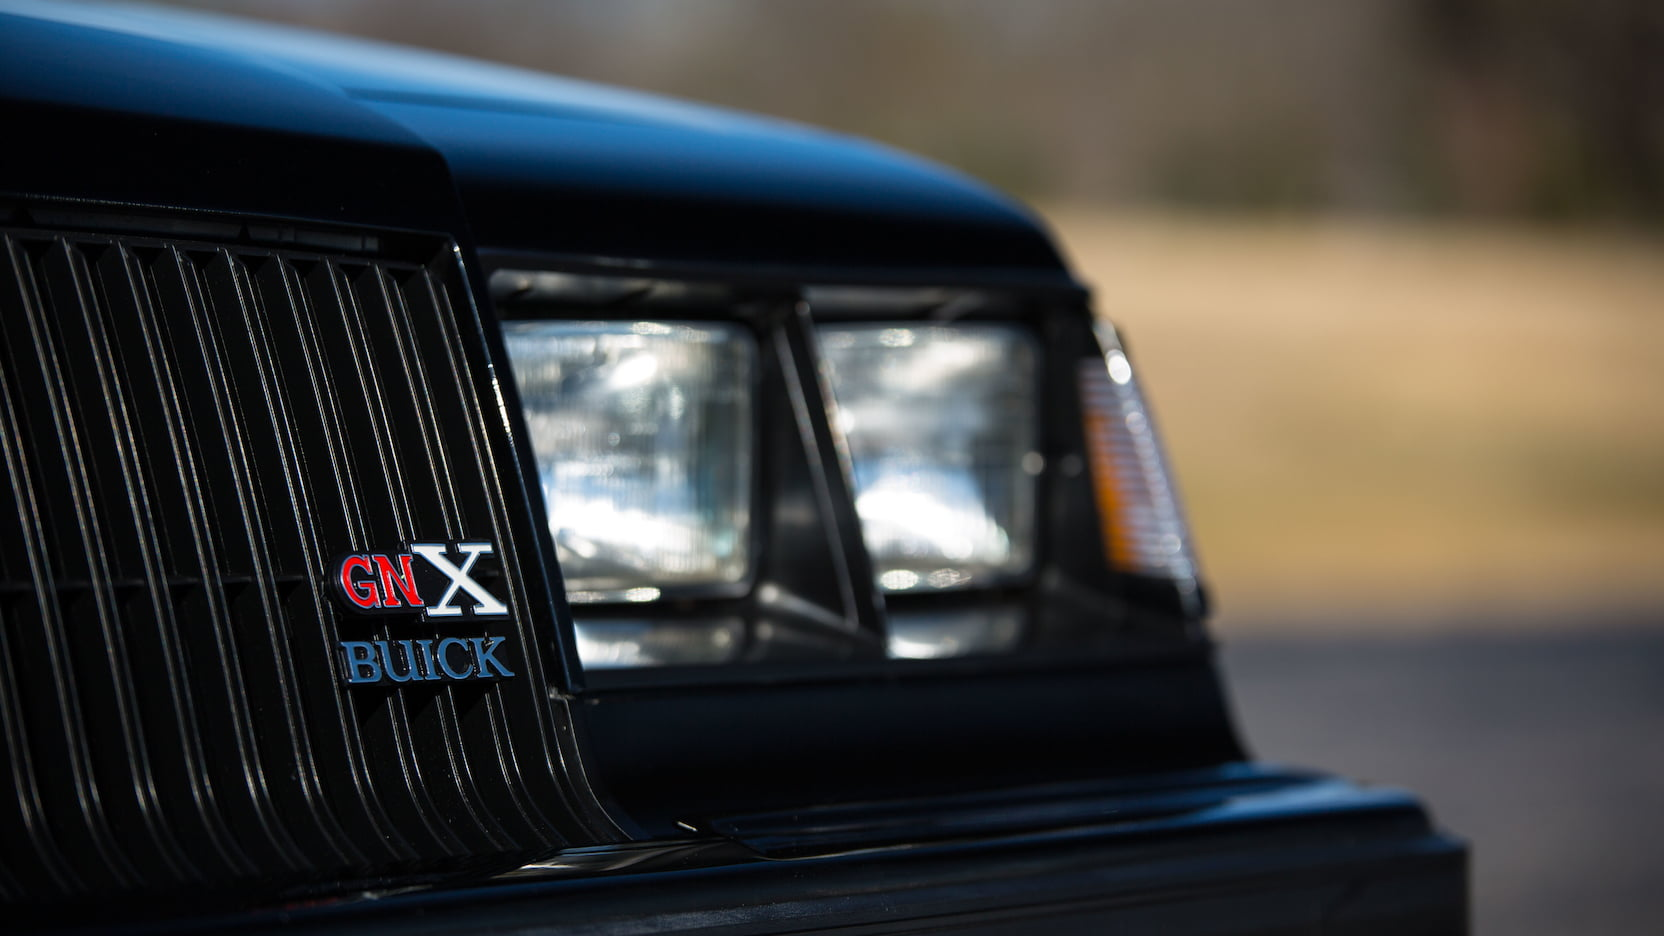 1987 Buick GNX badge detail